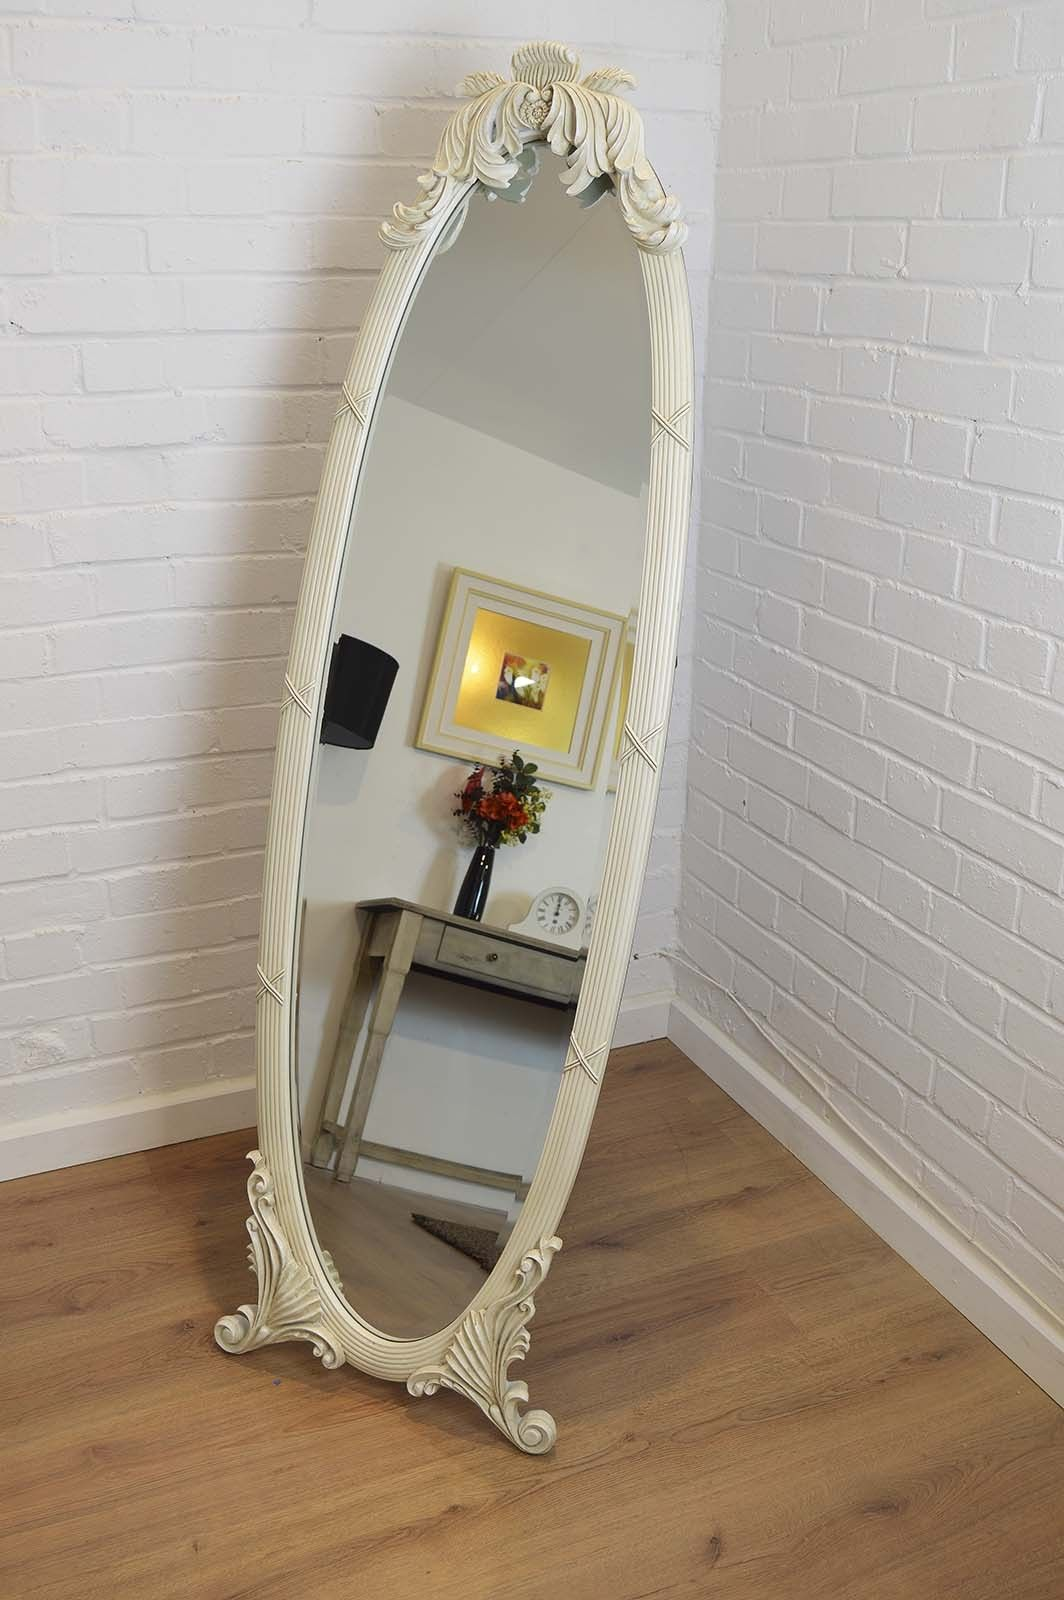 Large Antique Ornate Cream Oval Cheval Mirror 5ft5 x 1ft7 | Decor ...